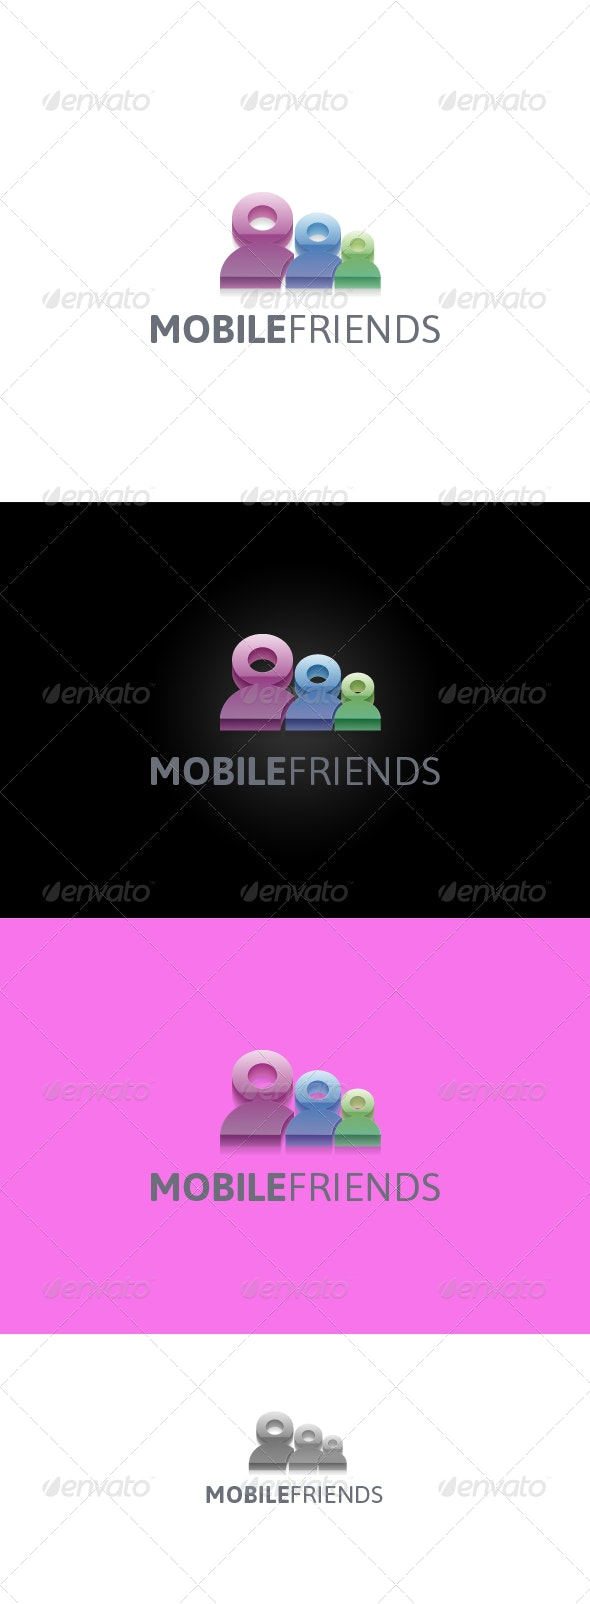 MobileFriends - 3d Abstract